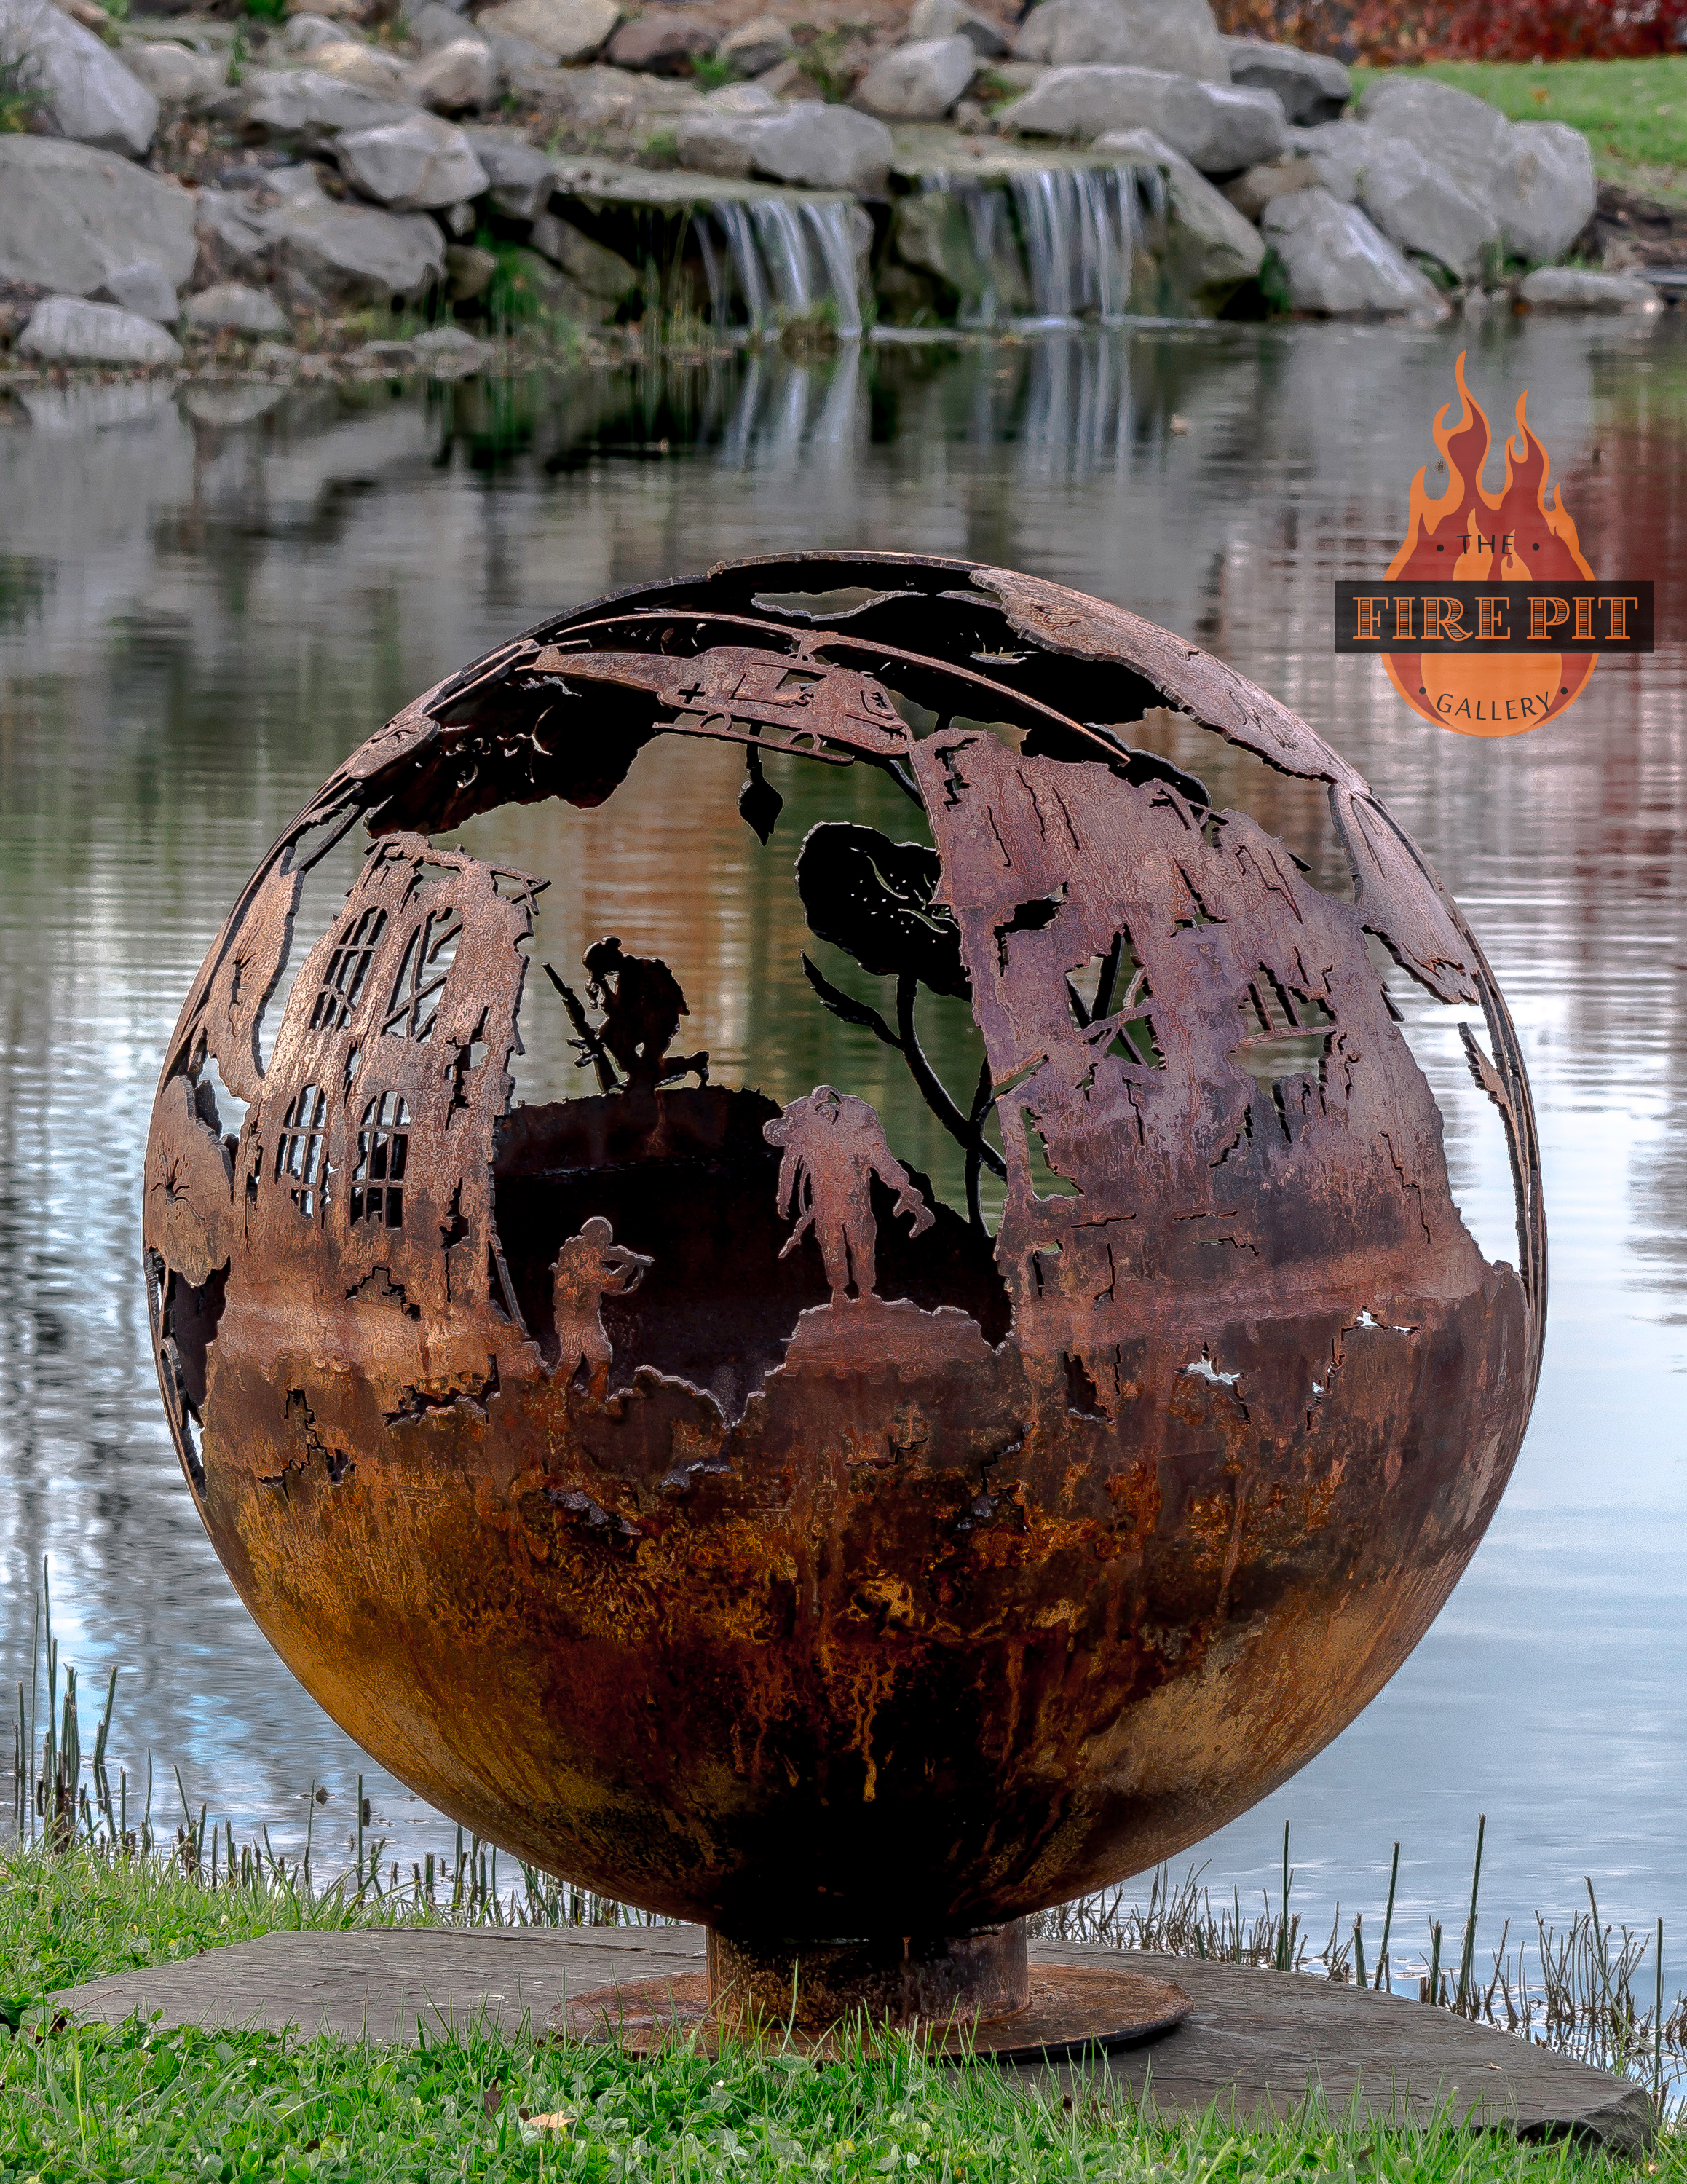 Lest We Forget Remembrance Day Fire Pit Sphere The